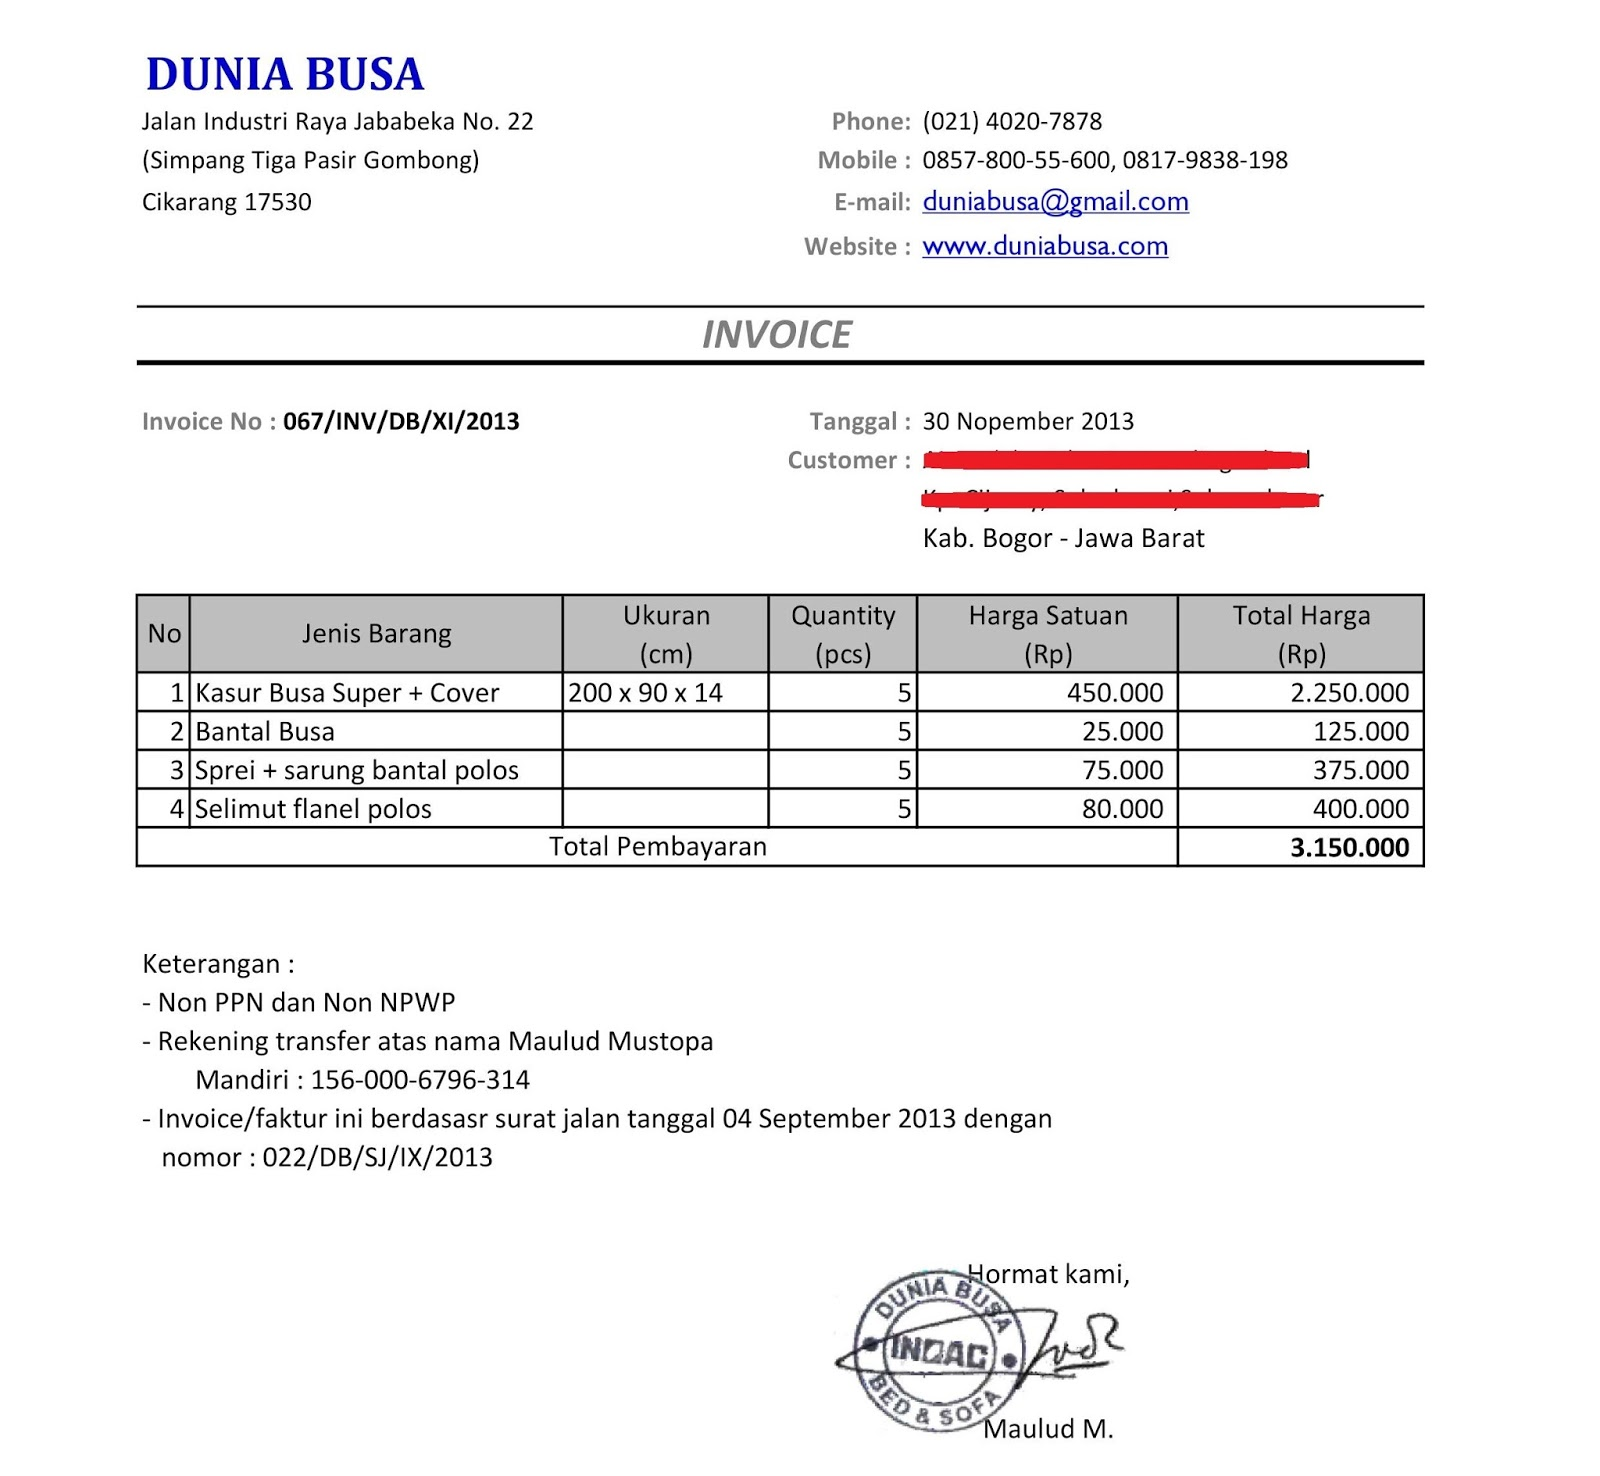 Centralasianshepherdus  Remarkable Free Invoice Online  Create Invoice Online  Invoice Template  With Luxury Contoh Format Invoice Atau Surat Tagihan  Brankas Arsip  Free Invoice Online With Enchanting Invoice Printing Company Also Invoice Dictionary In Addition Free Pdf Invoice Template And Invoice Scam As Well As Invoice Free Download Additionally Making Invoices From Sklepco With Centralasianshepherdus  Luxury Free Invoice Online  Create Invoice Online  Invoice Template  With Enchanting Contoh Format Invoice Atau Surat Tagihan  Brankas Arsip  Free Invoice Online And Remarkable Invoice Printing Company Also Invoice Dictionary In Addition Free Pdf Invoice Template From Sklepco